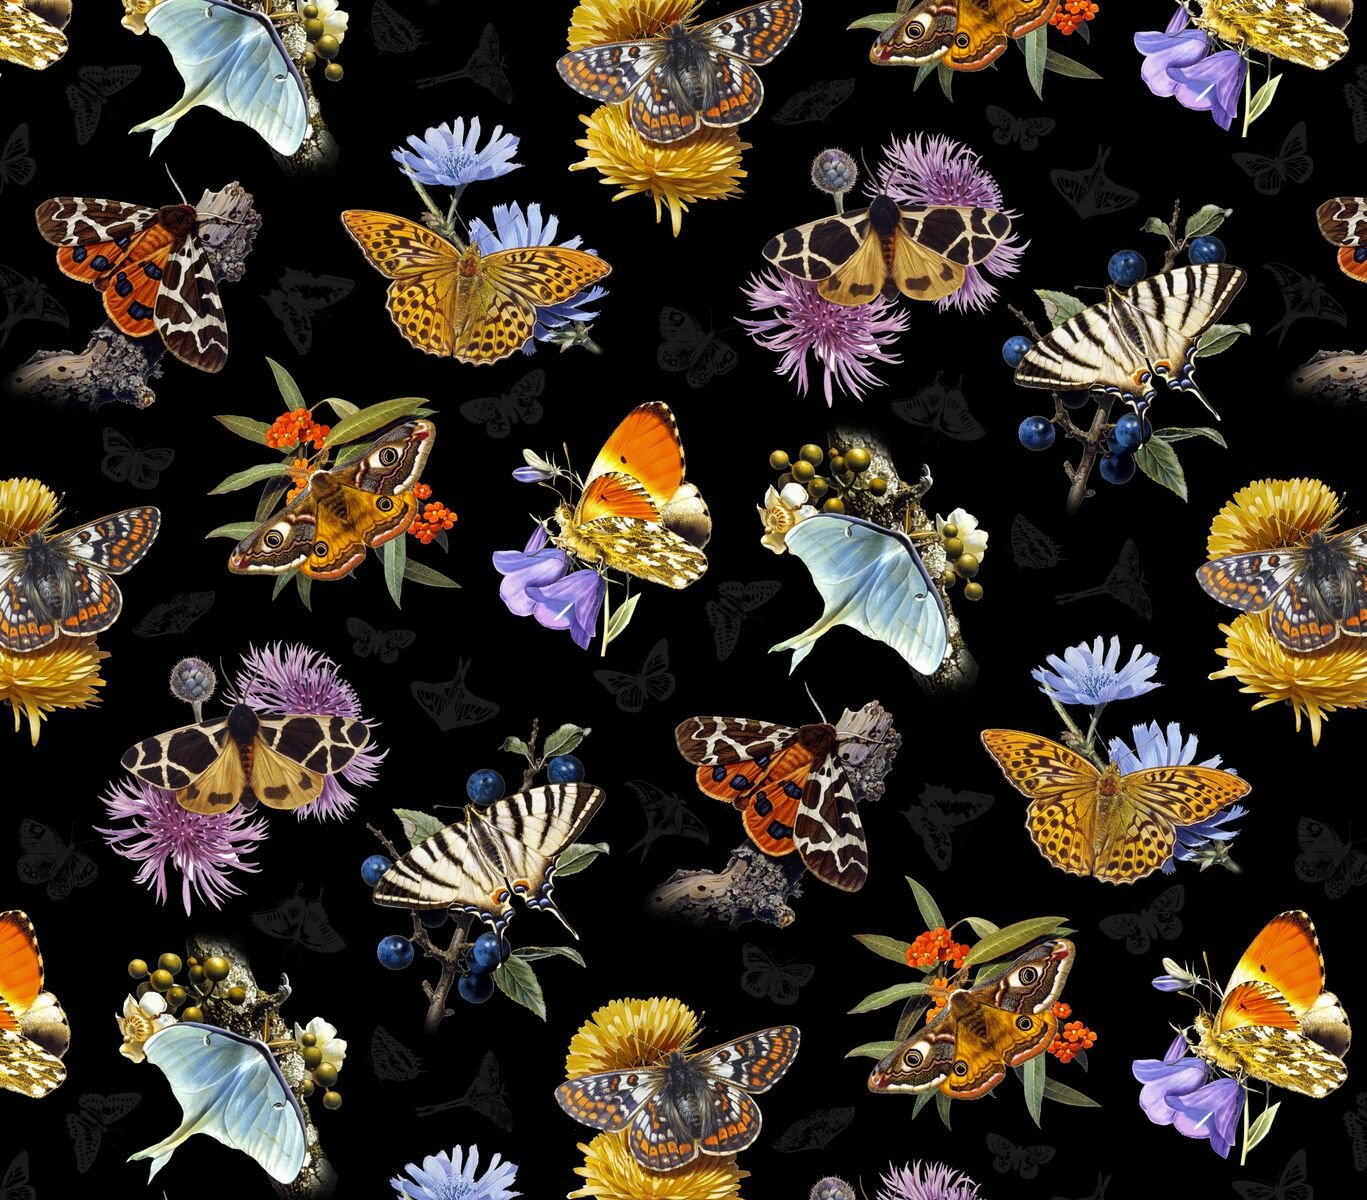 PROMO* ES-Butterflies and Moths 9801 Butterflies, Moths, Flowers - Black